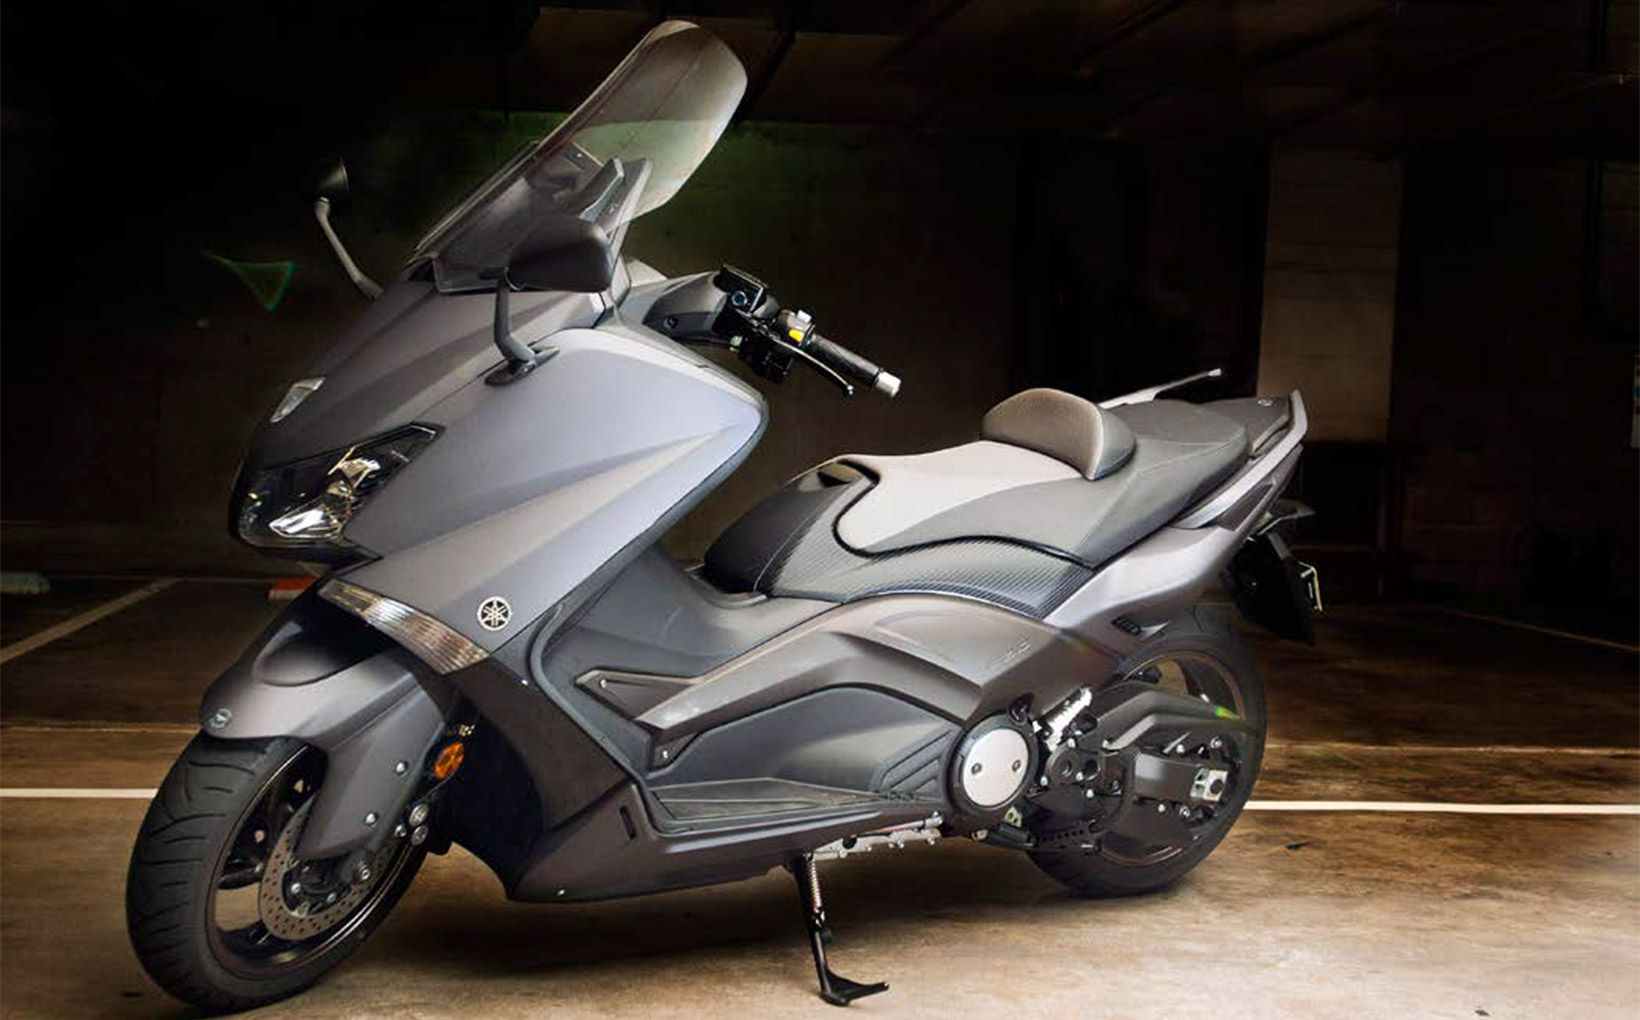 quikspin yamaha tmax 530 taking it to the max. Black Bedroom Furniture Sets. Home Design Ideas